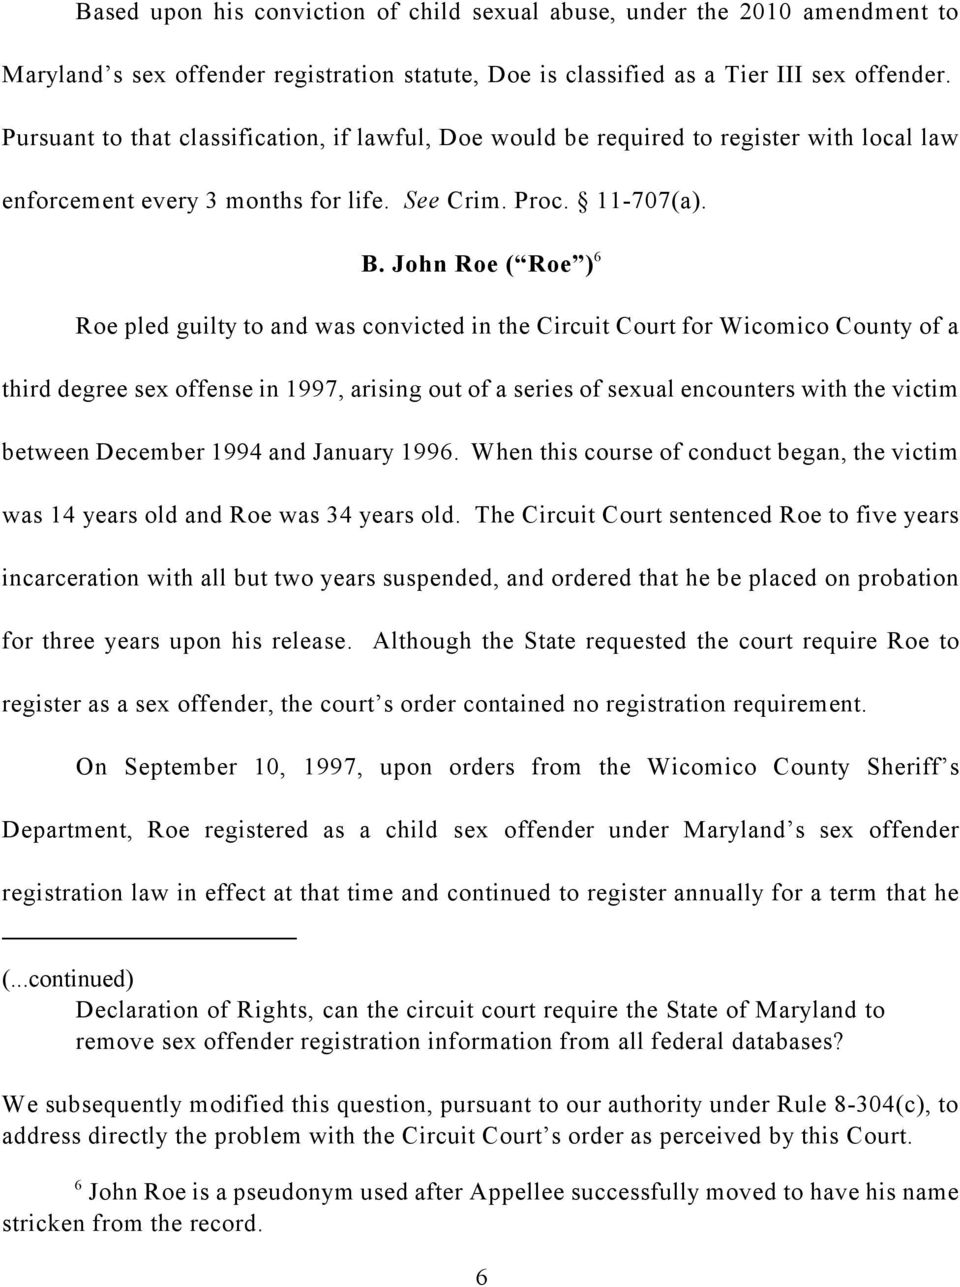 John Roe ( Roe ) 6 Roe pled guilty to and was convicted in the Circuit Court for Wicomico County of a third degree sex offense in 1997, arising out of a series of sexual encounters with the victim